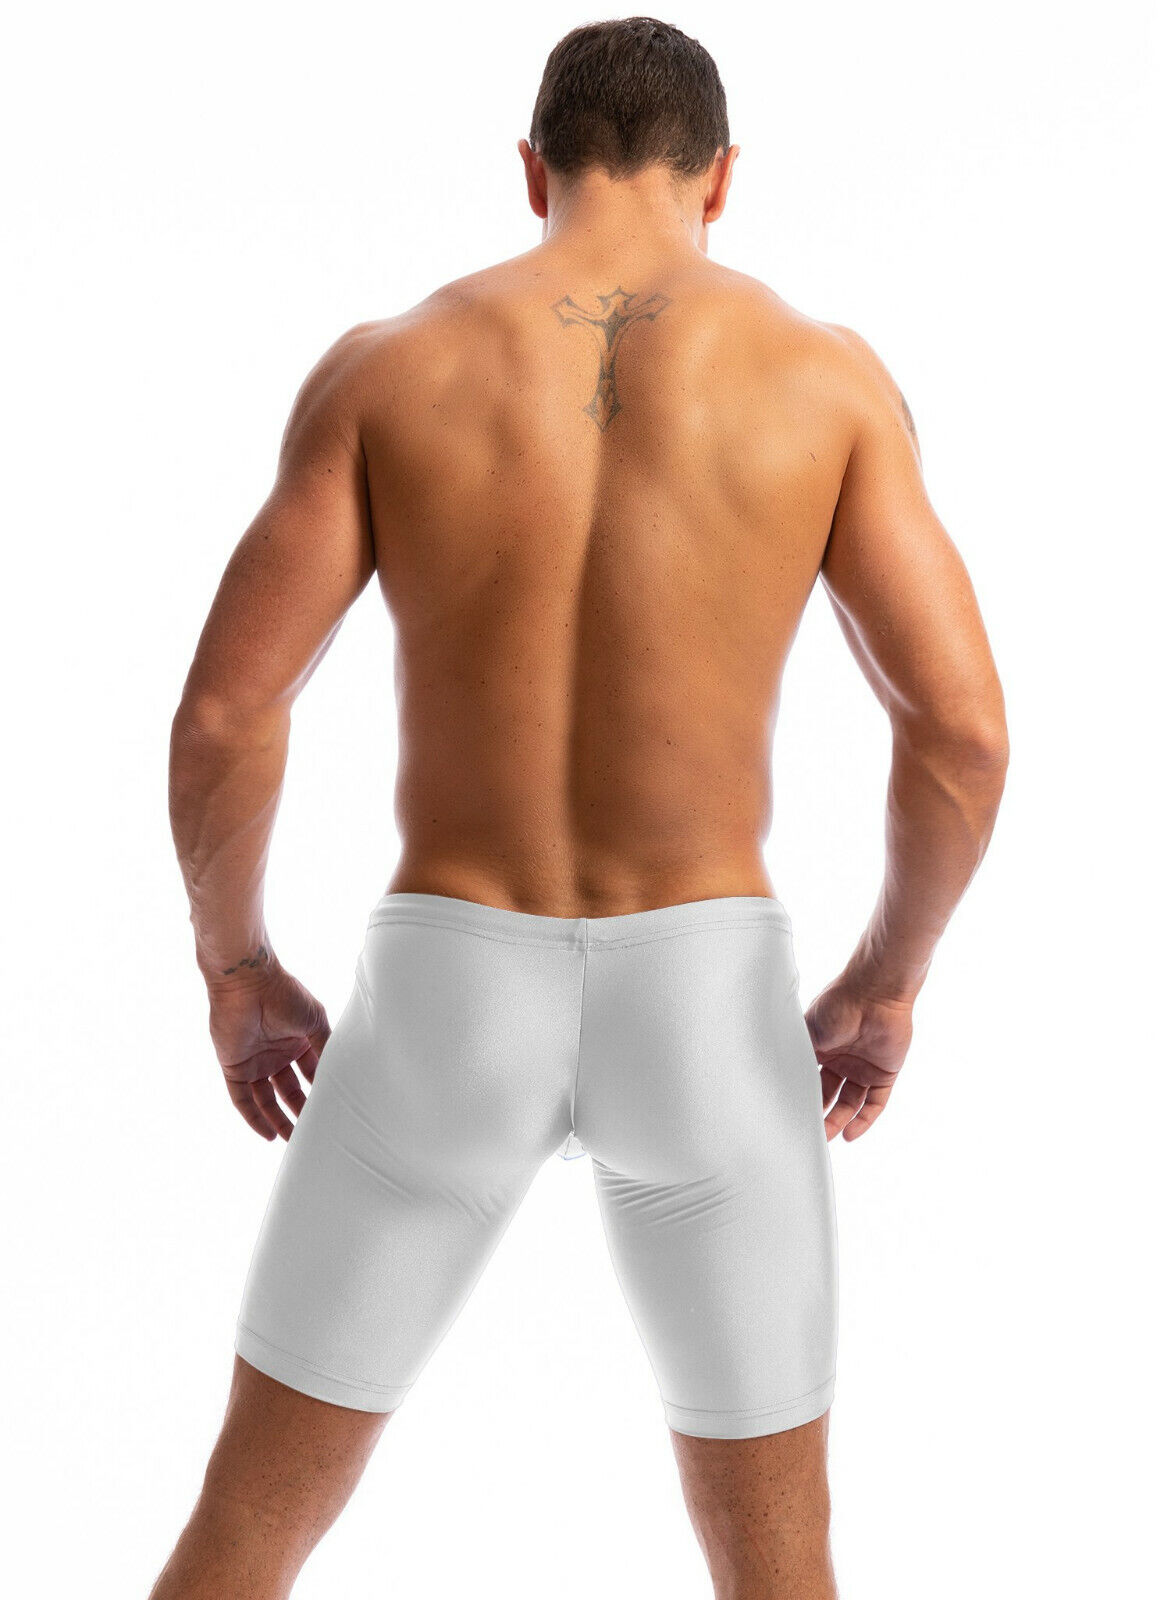 N2N Bodywear Men white Extreme Pouch biker shorts Activewear